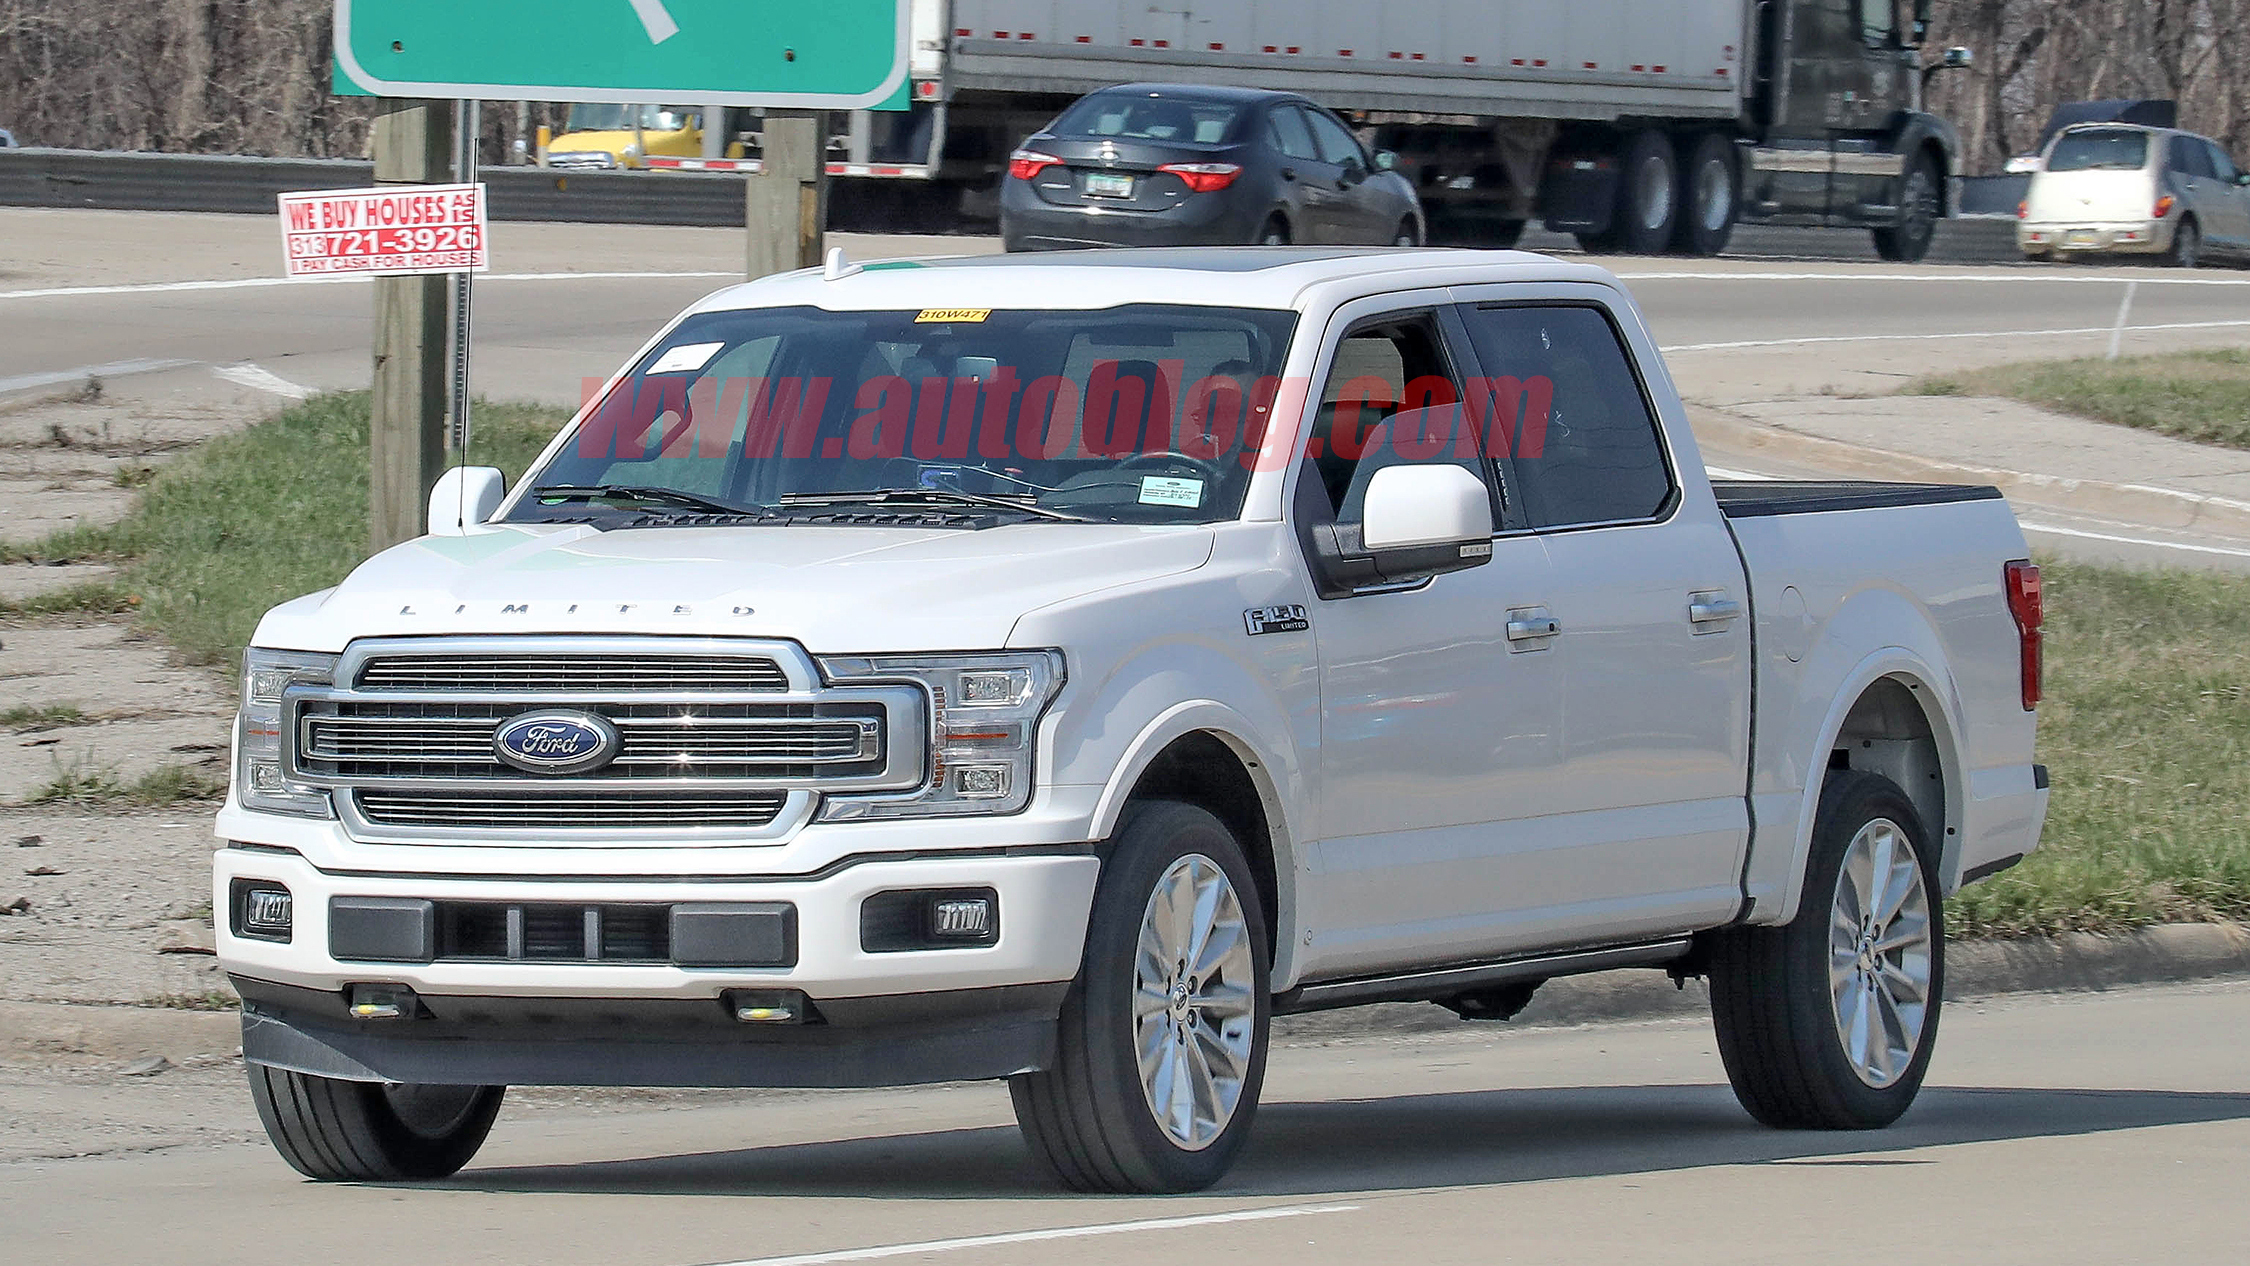 2019 Ford F-150 Limited Photo Gallery - Autoblog